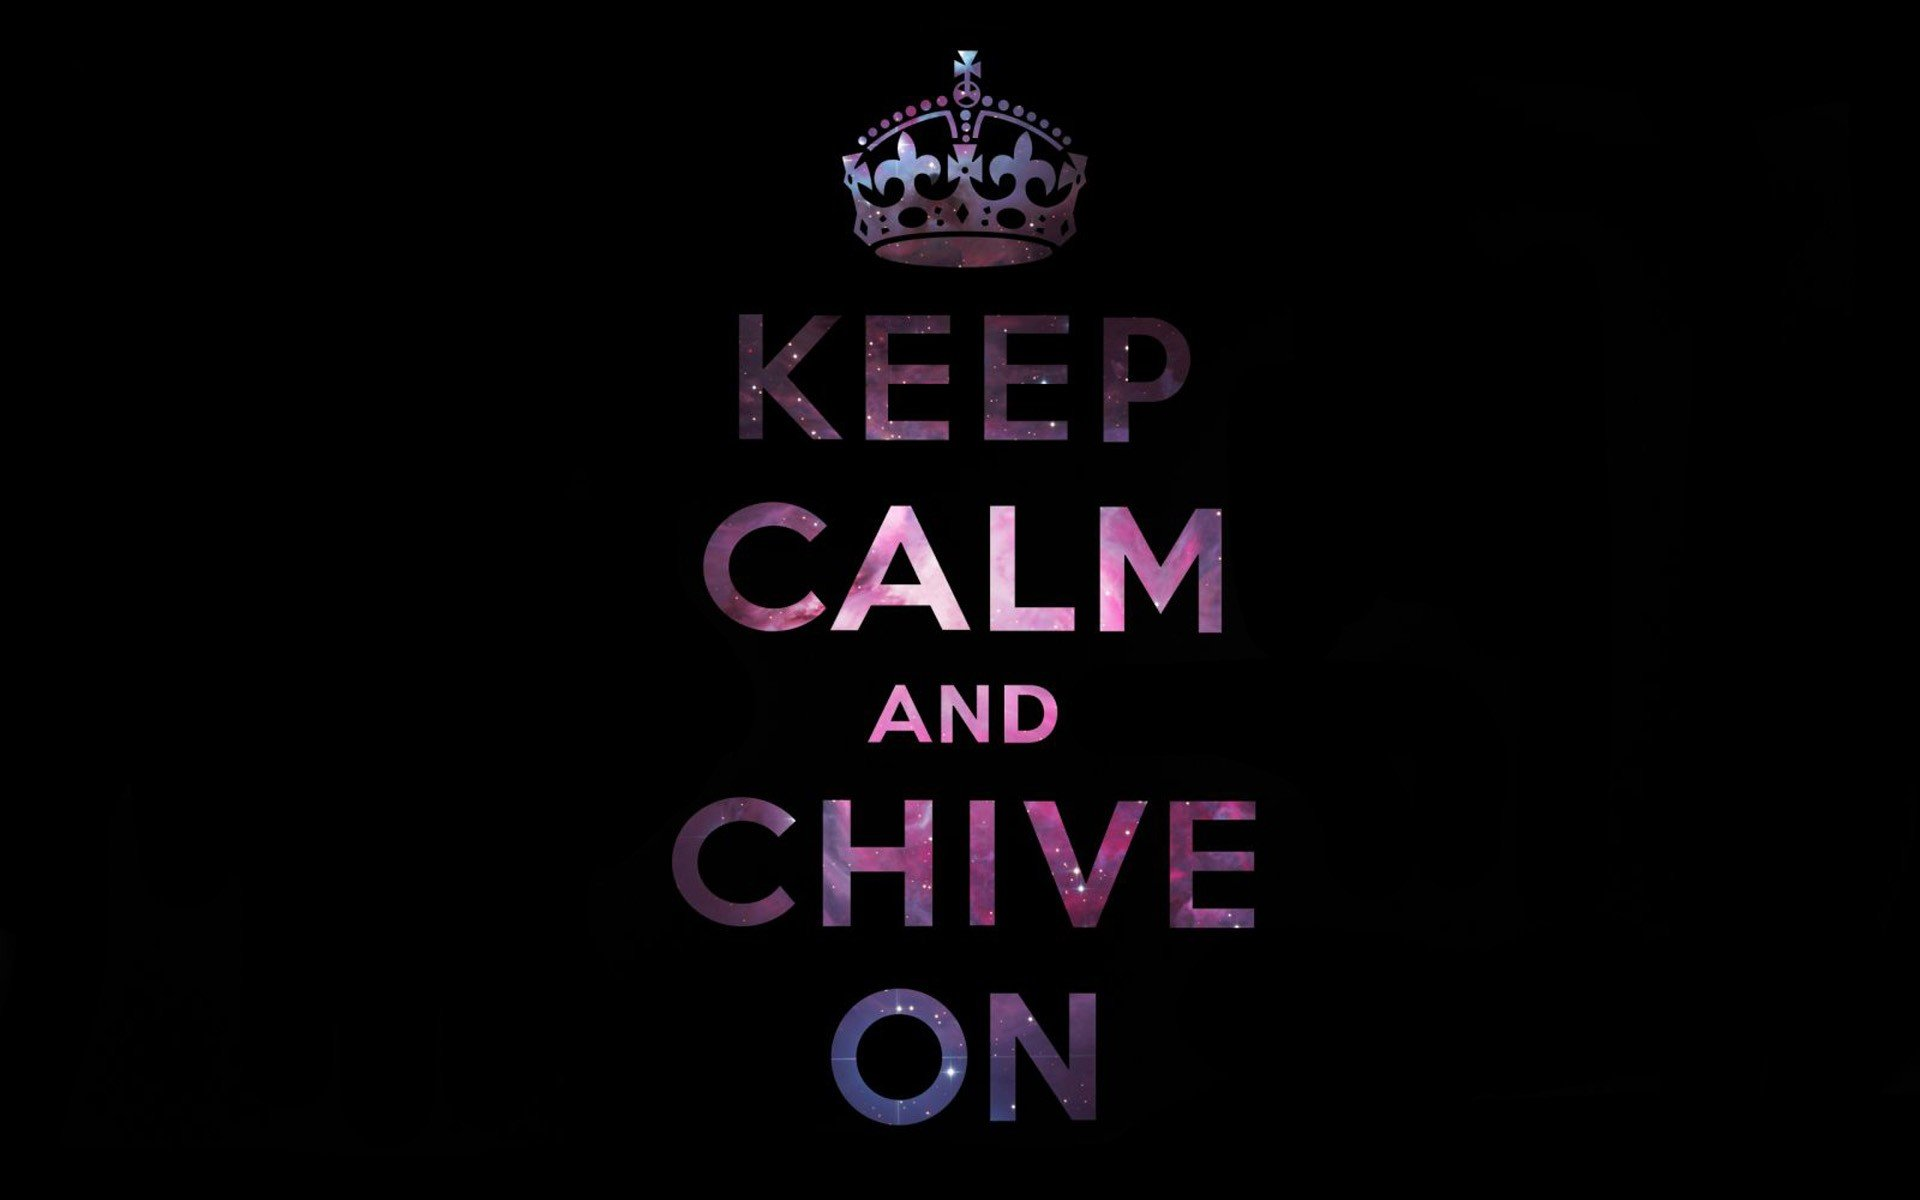 Calm and black background KCCO The Chive ChiveOn wallpaper background 1920x1200